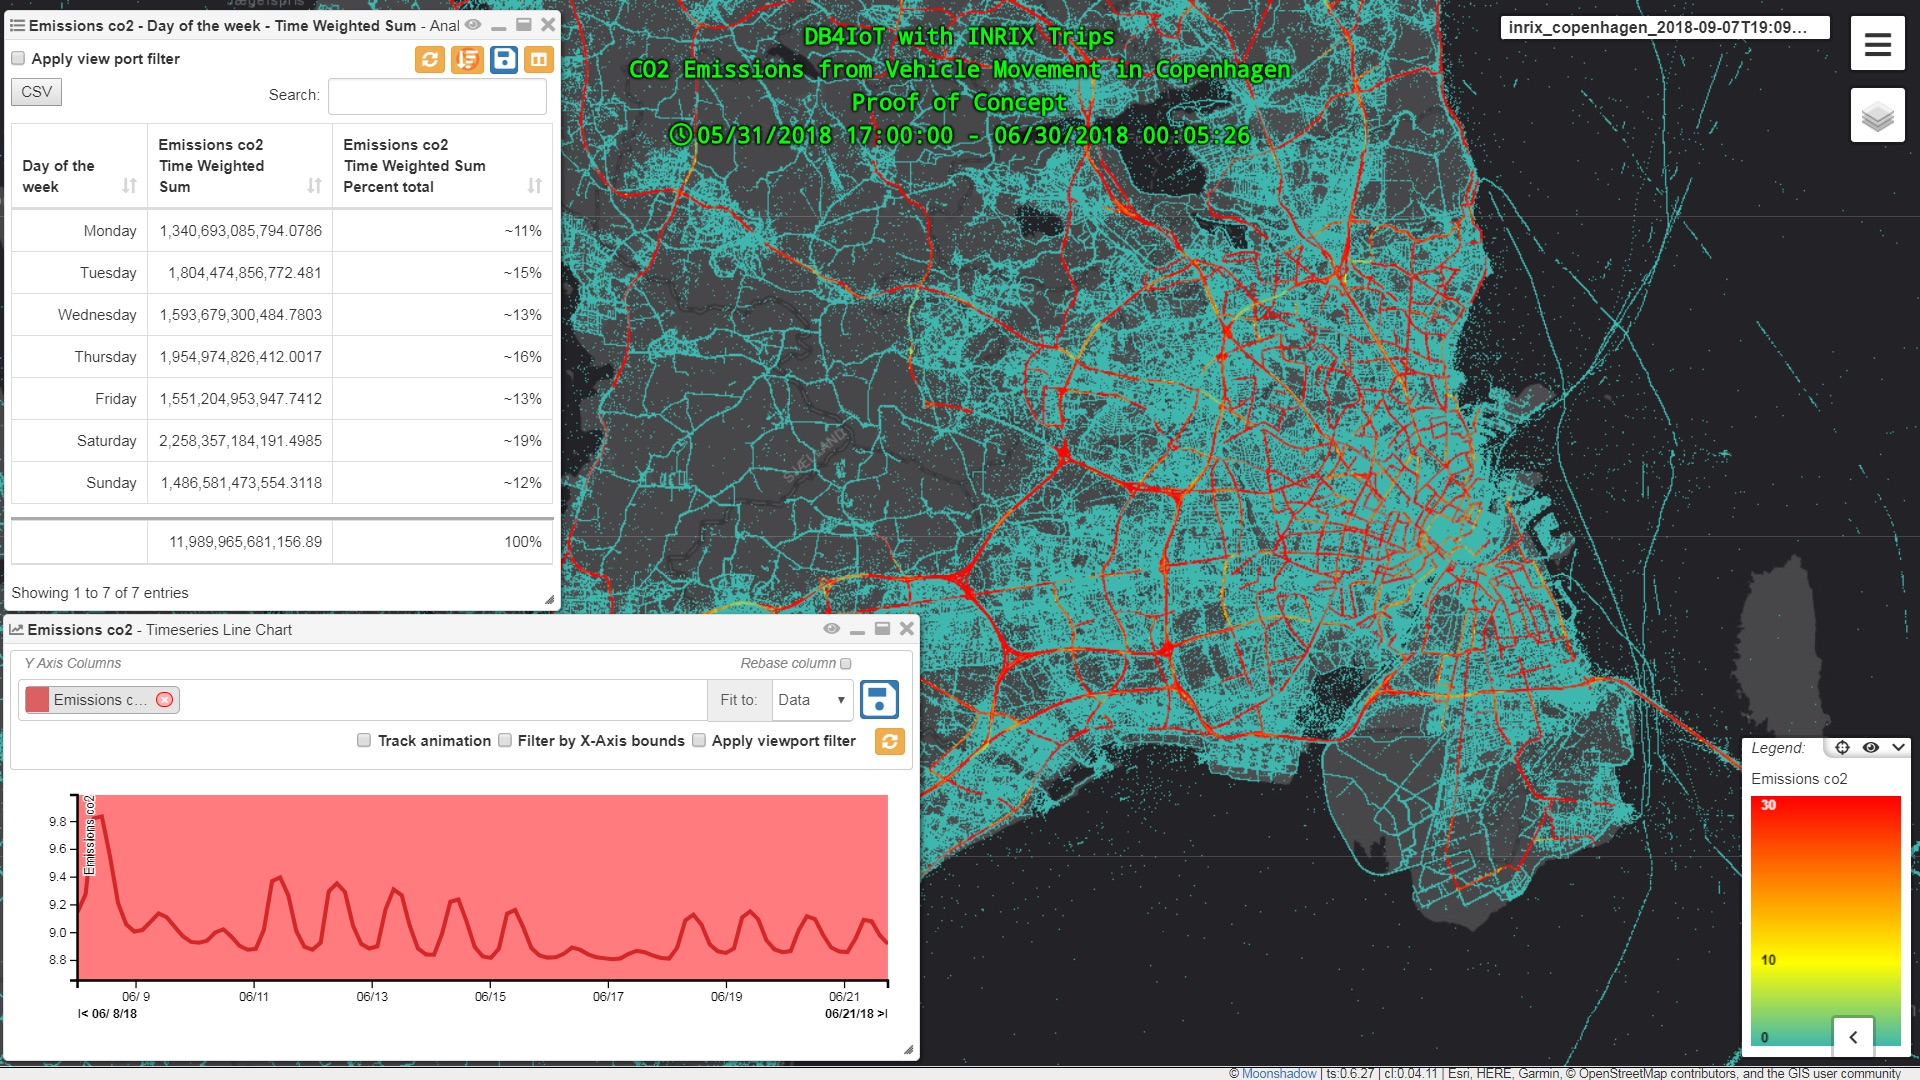 DB4IoT with INRIX Trips - CO2 Emissions in Copenhagen over ESRI Dark